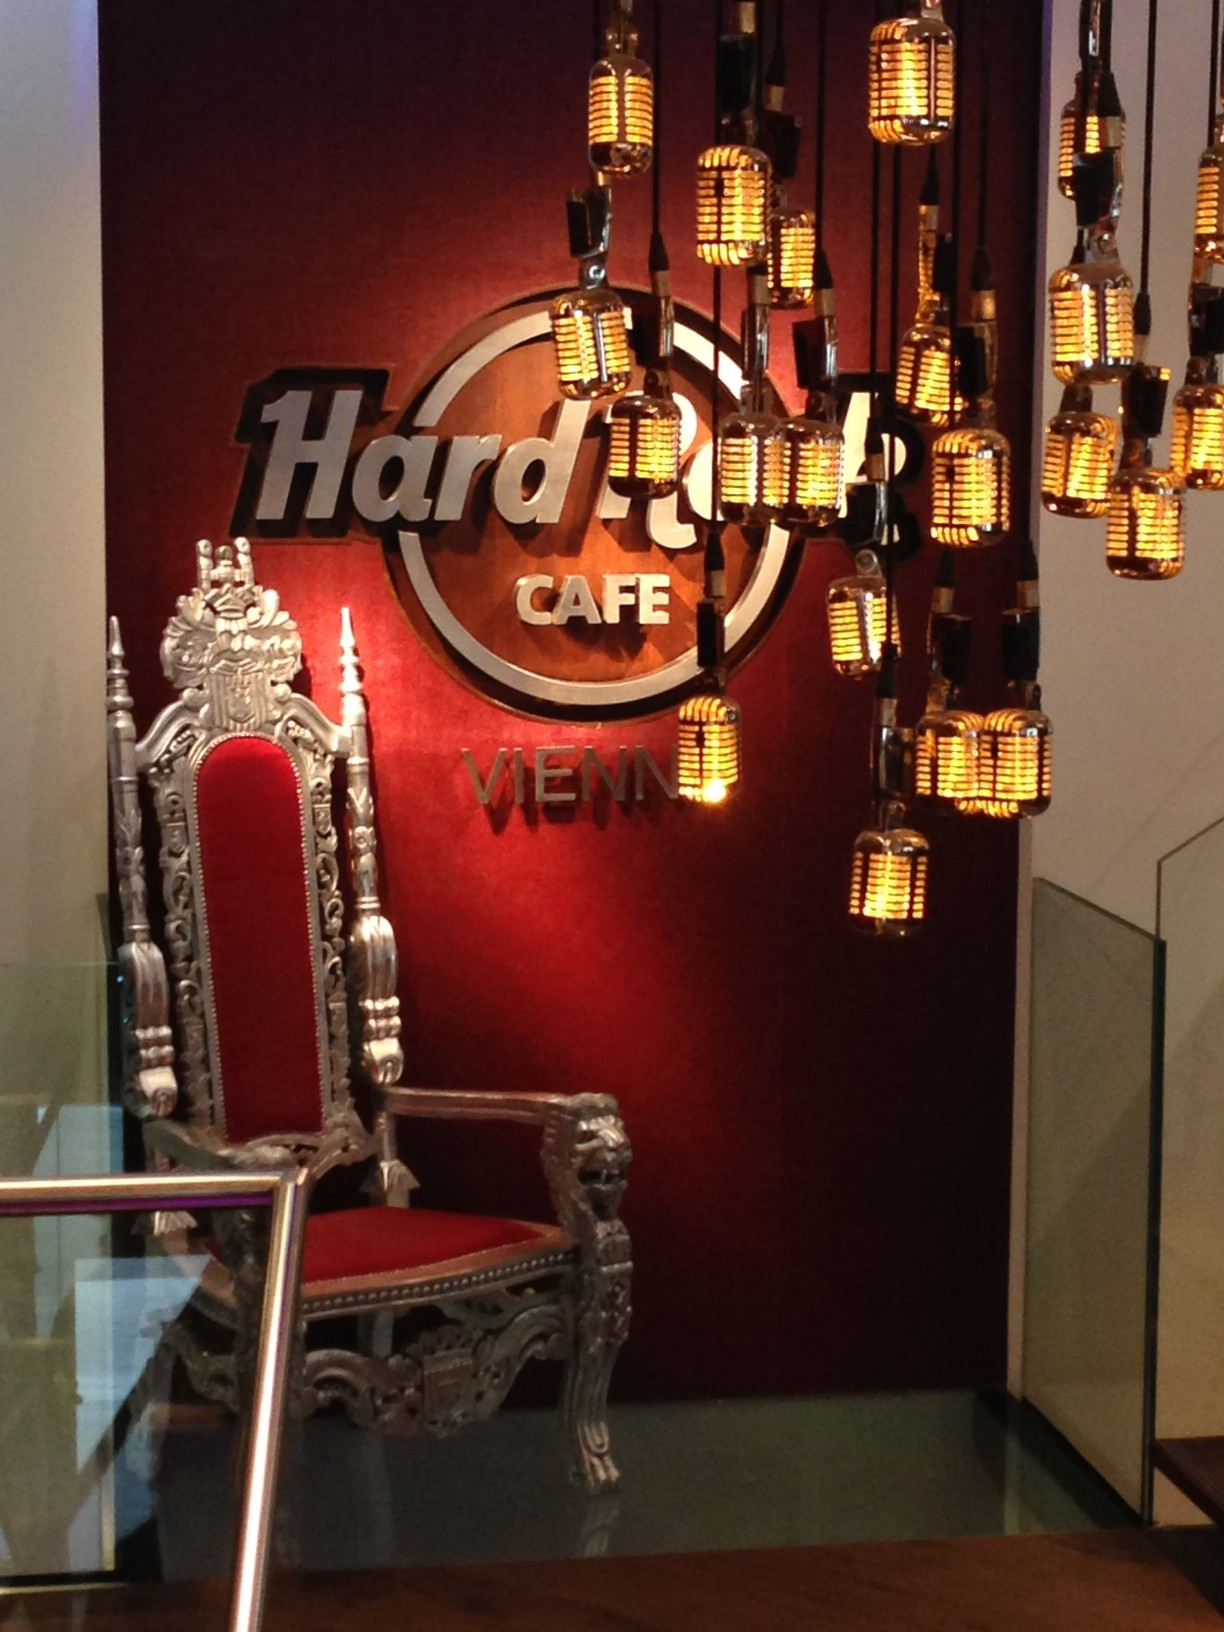 Hard Rock Cafe Vienna Austria Technical Arts Com